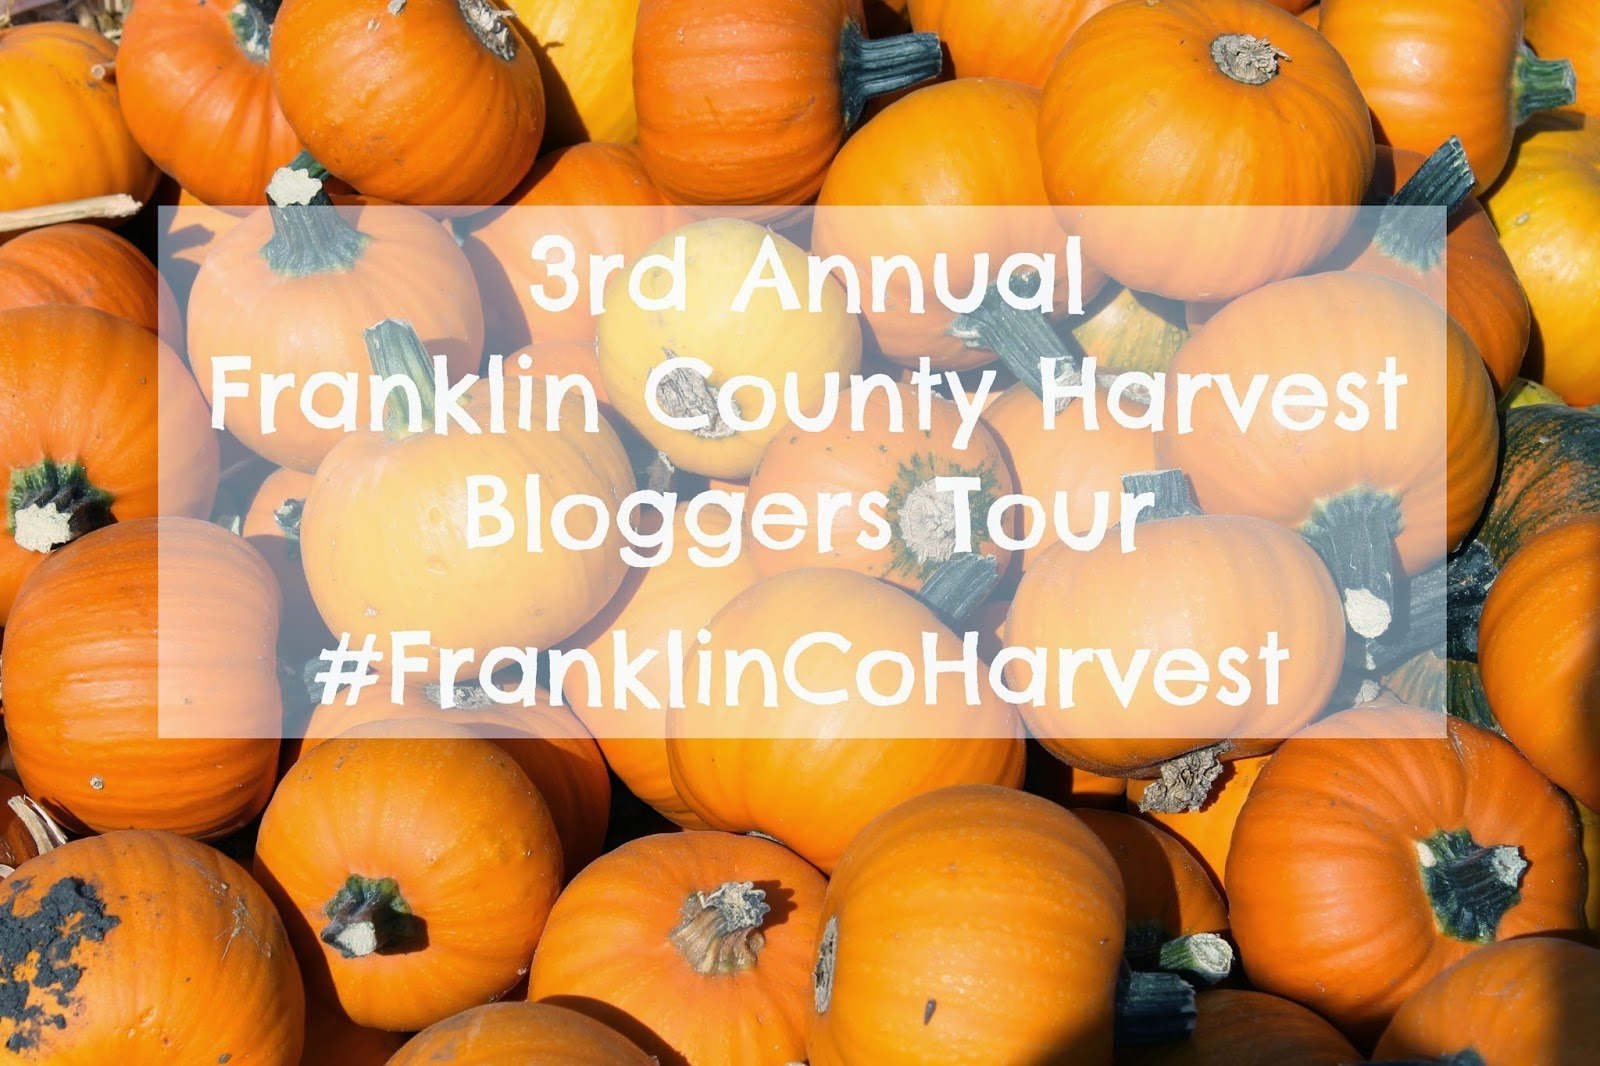 3rd Annual Franklin County Harvest Bloggers Tour #FranklinCoHarvest